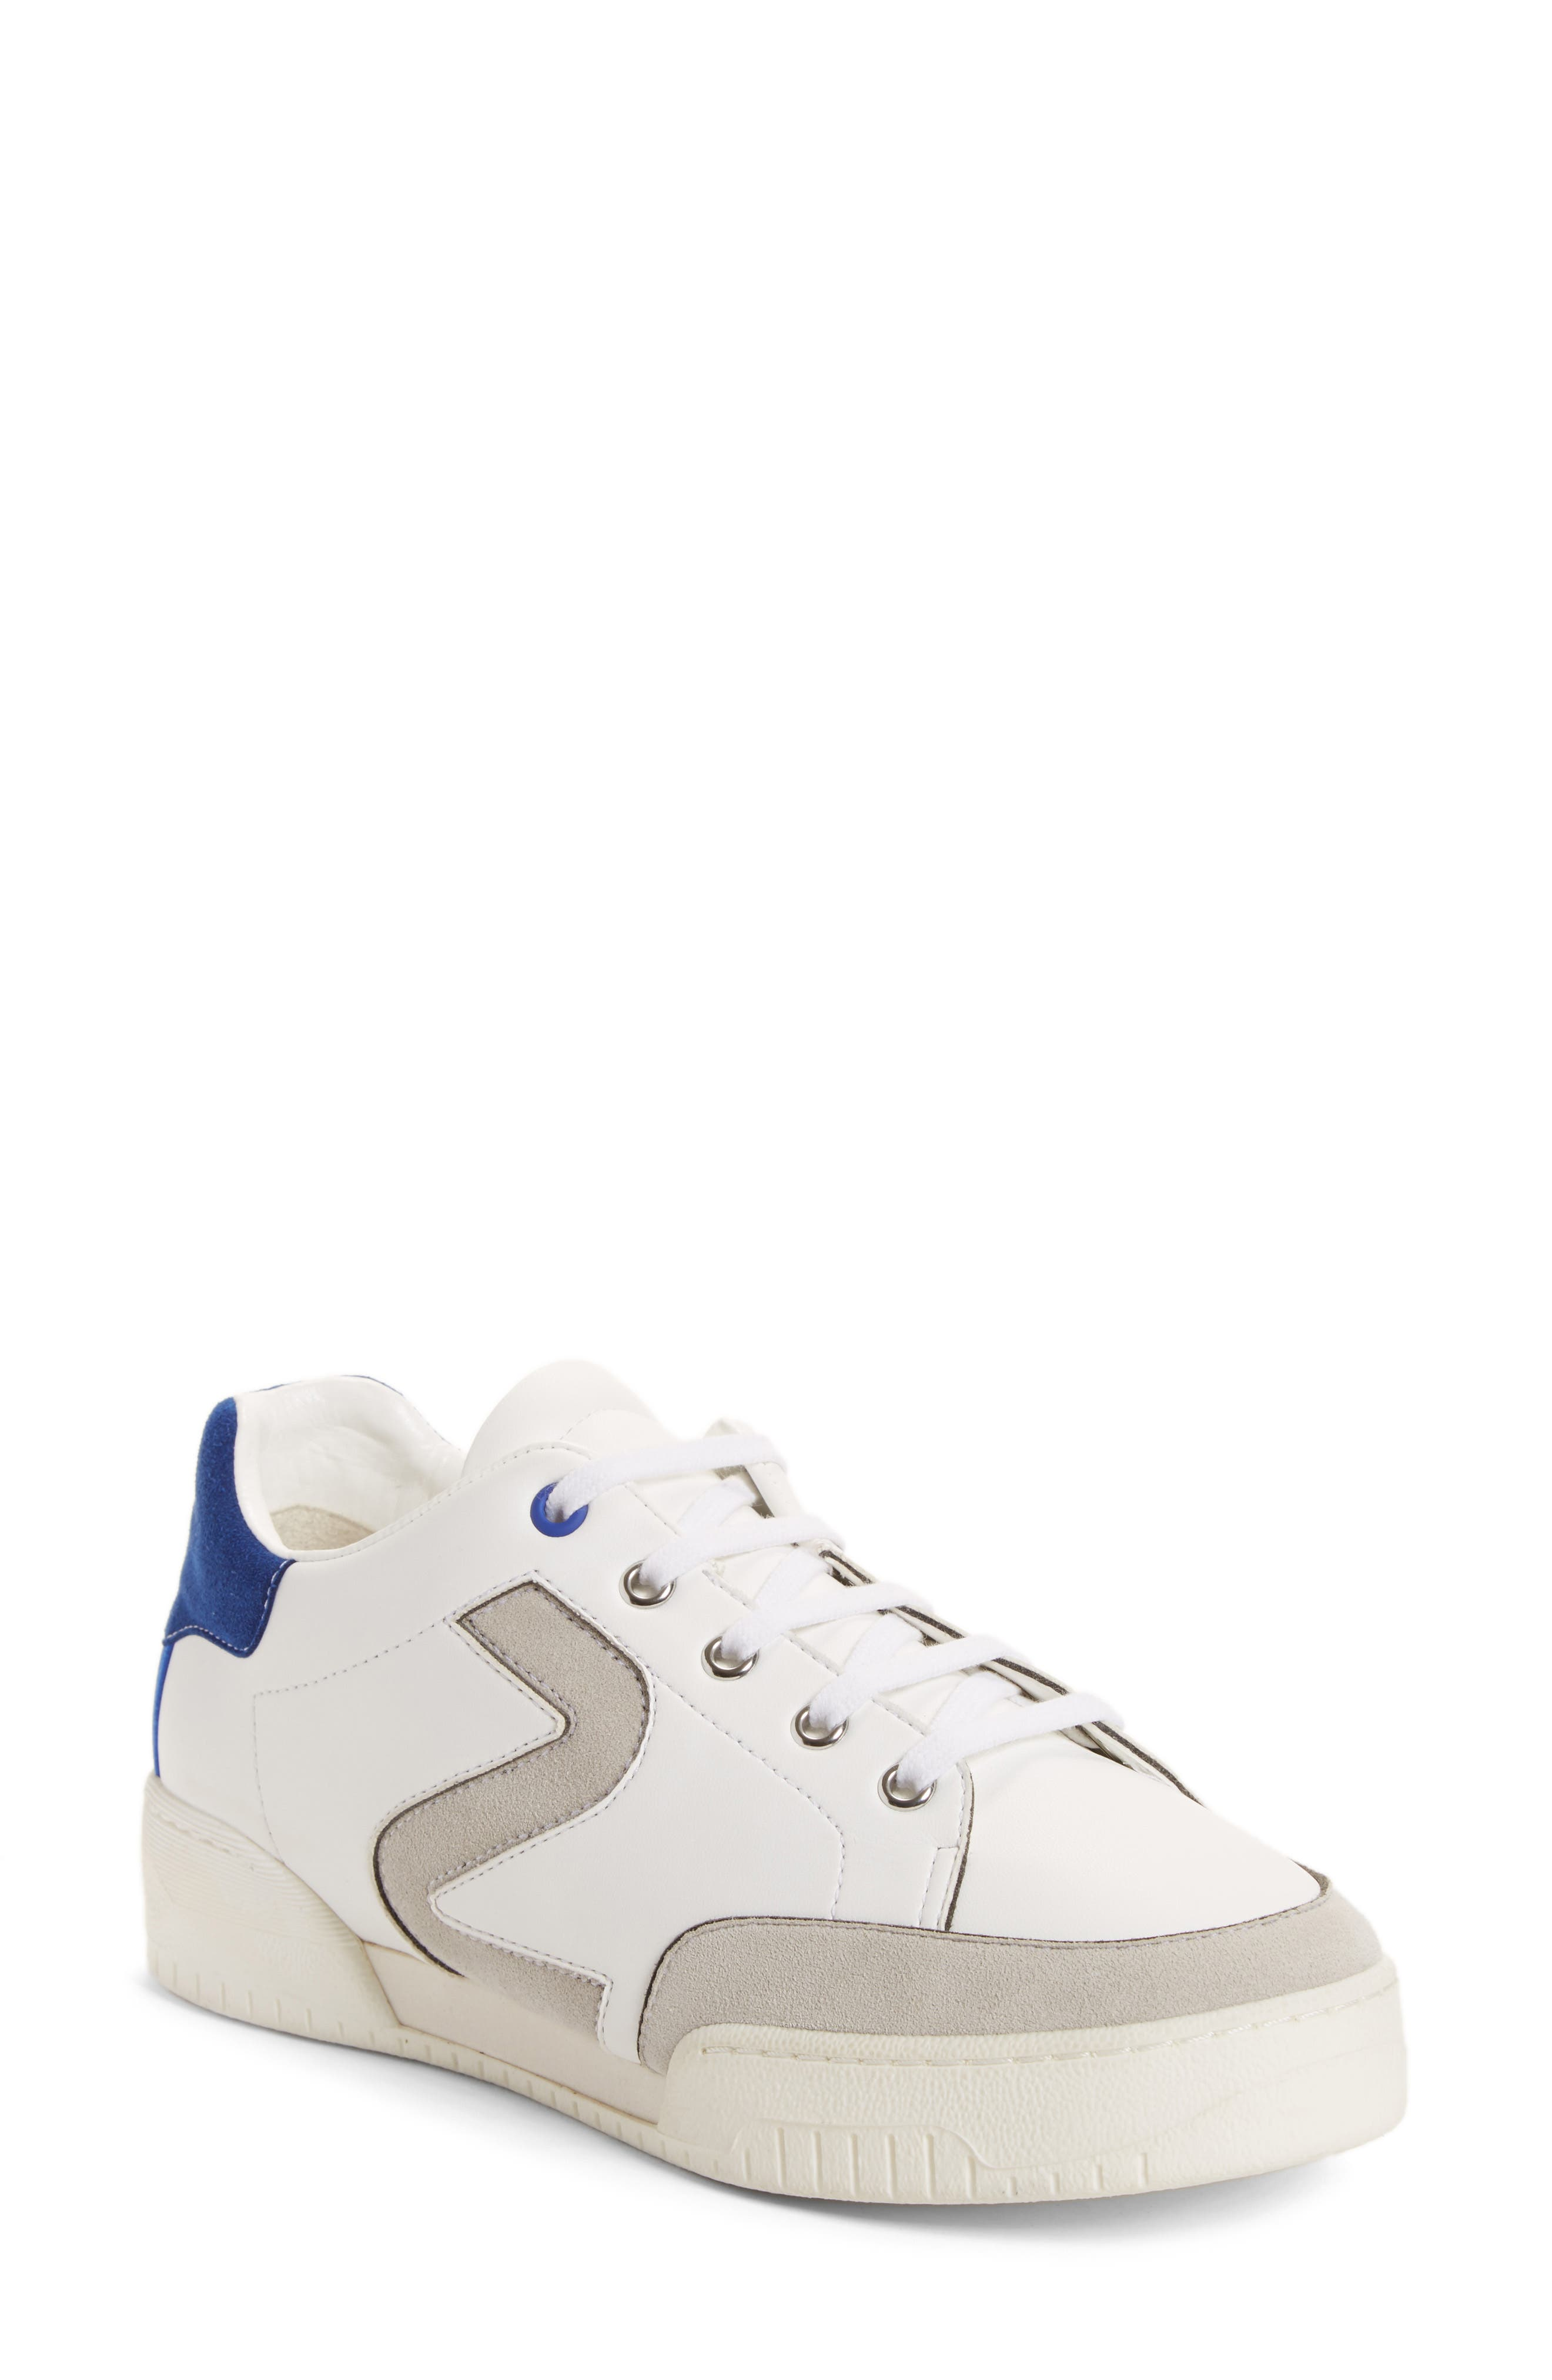 Main Image - Stella McCartney Logo Sneaker (Women)